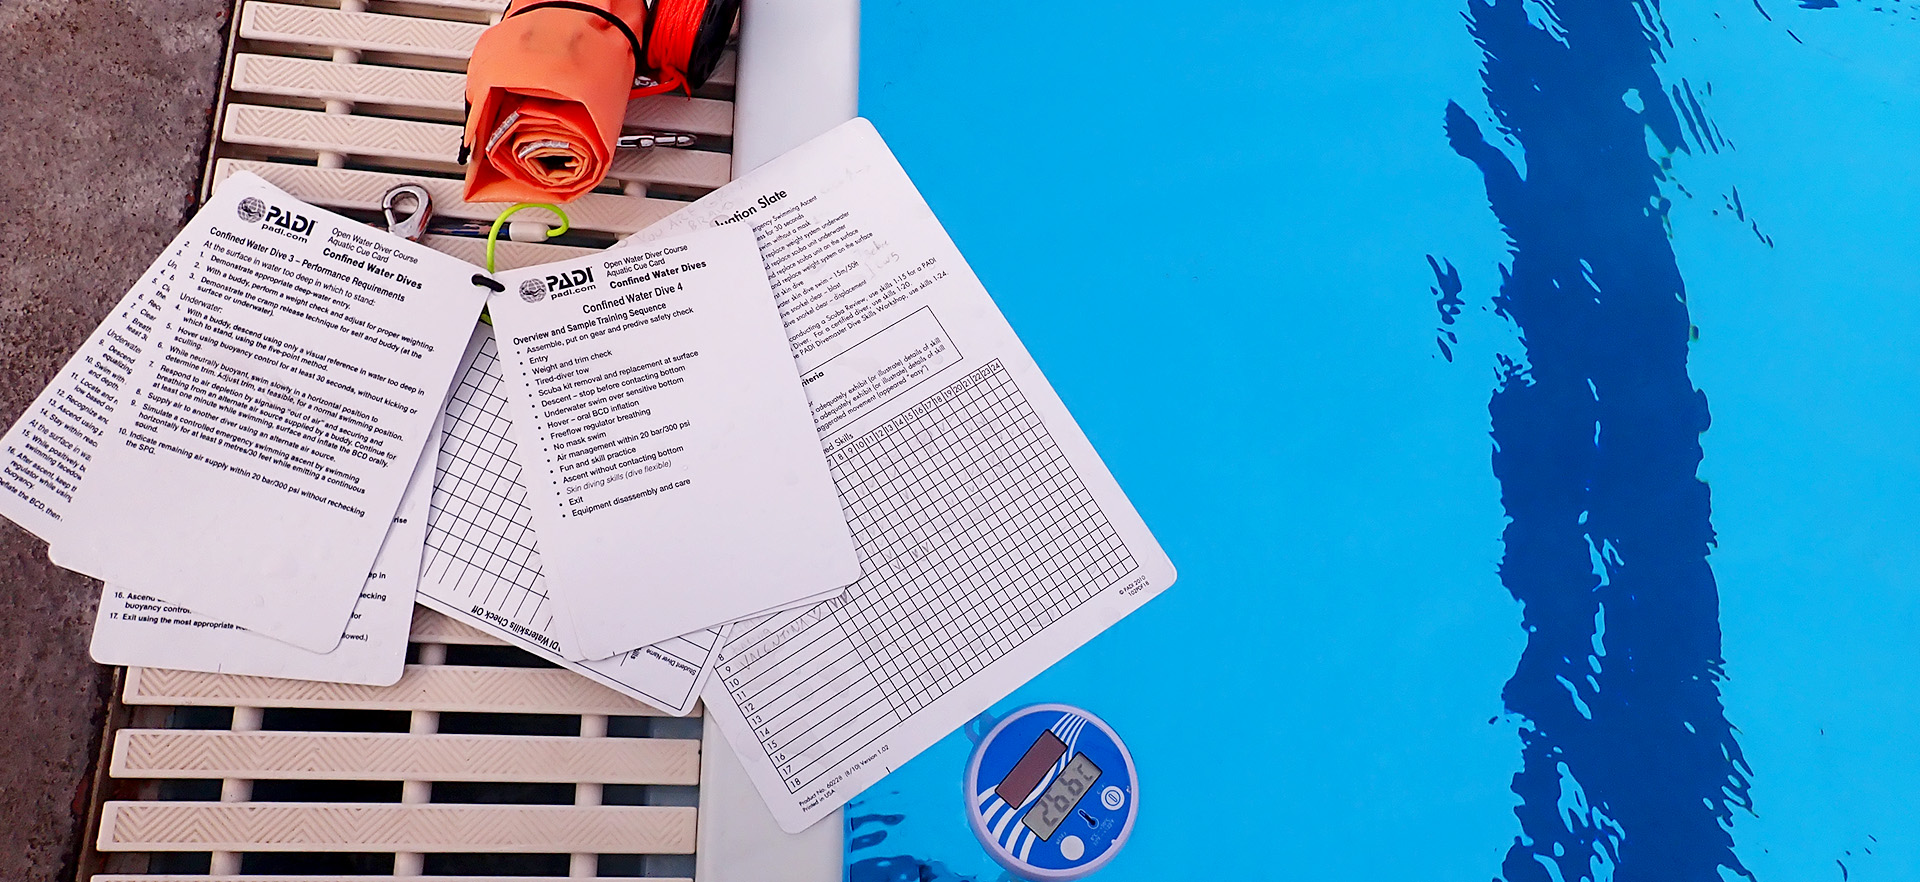 Diving documents next to swimming pool